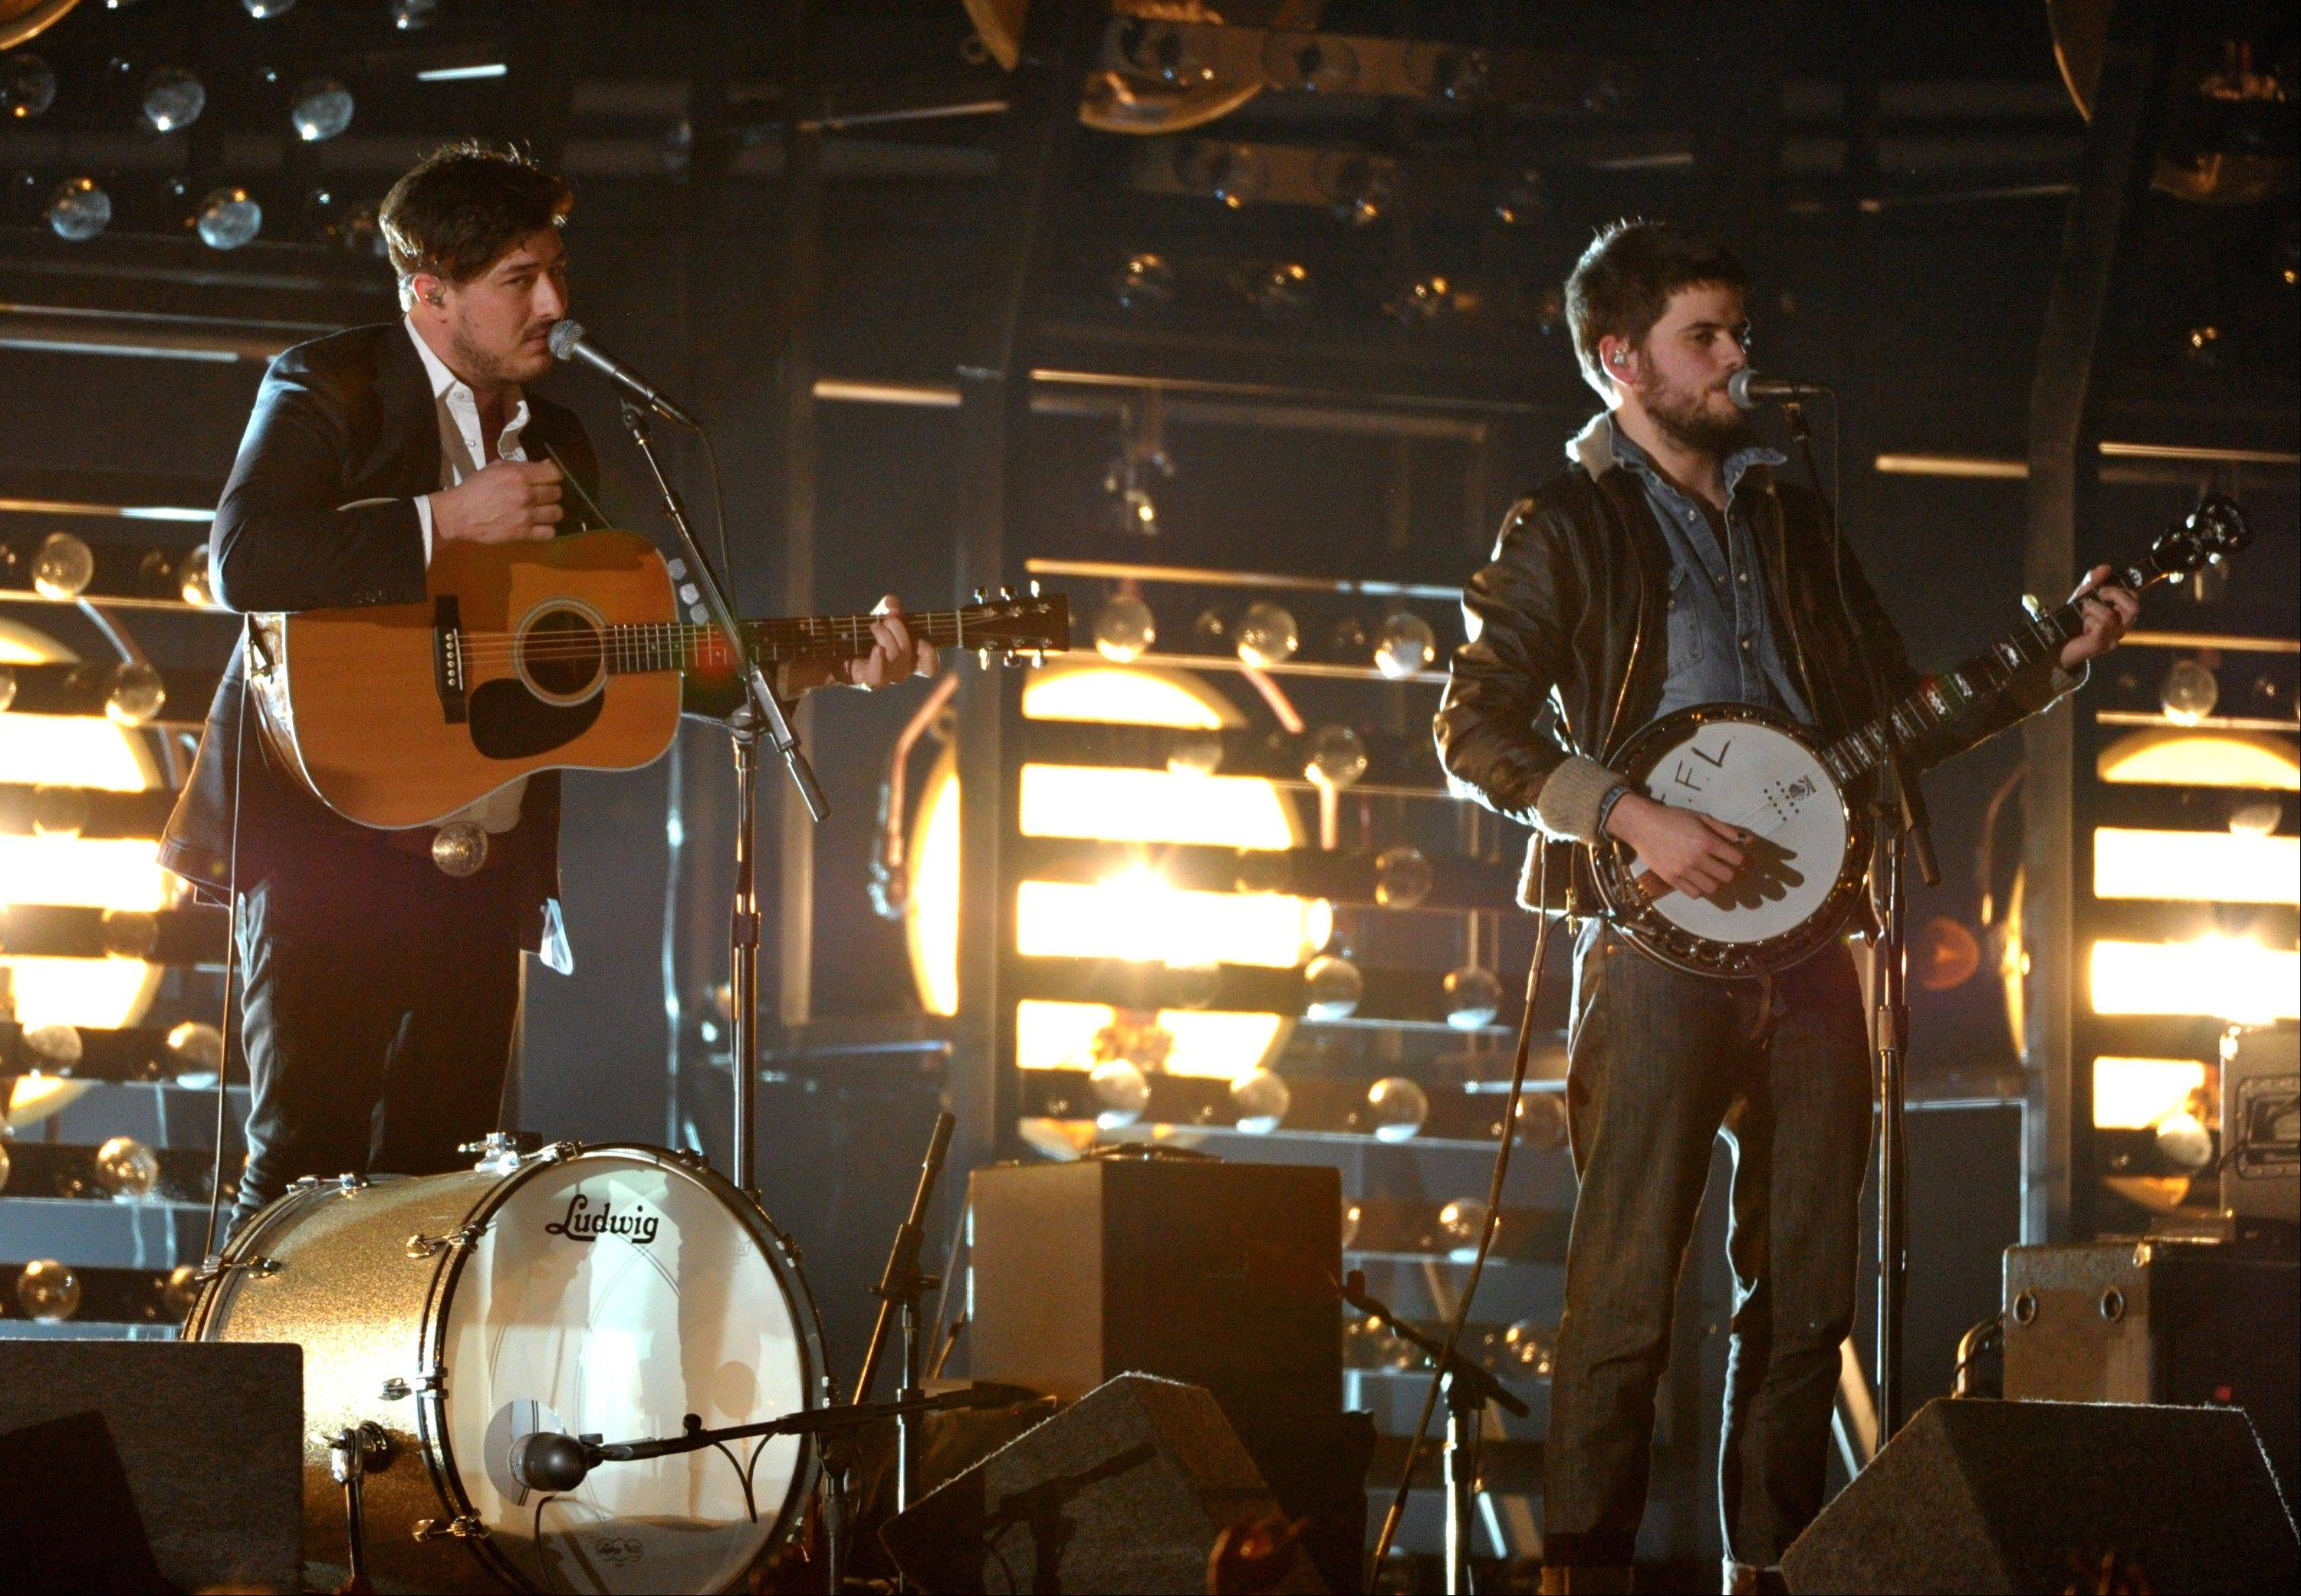 Marcus Mumford, left, and Winston Marshall, of Mumford & Sons, perform at the 55th annual Grammy Awards on Sunday, Feb. 10, 2013, in Los Angeles.